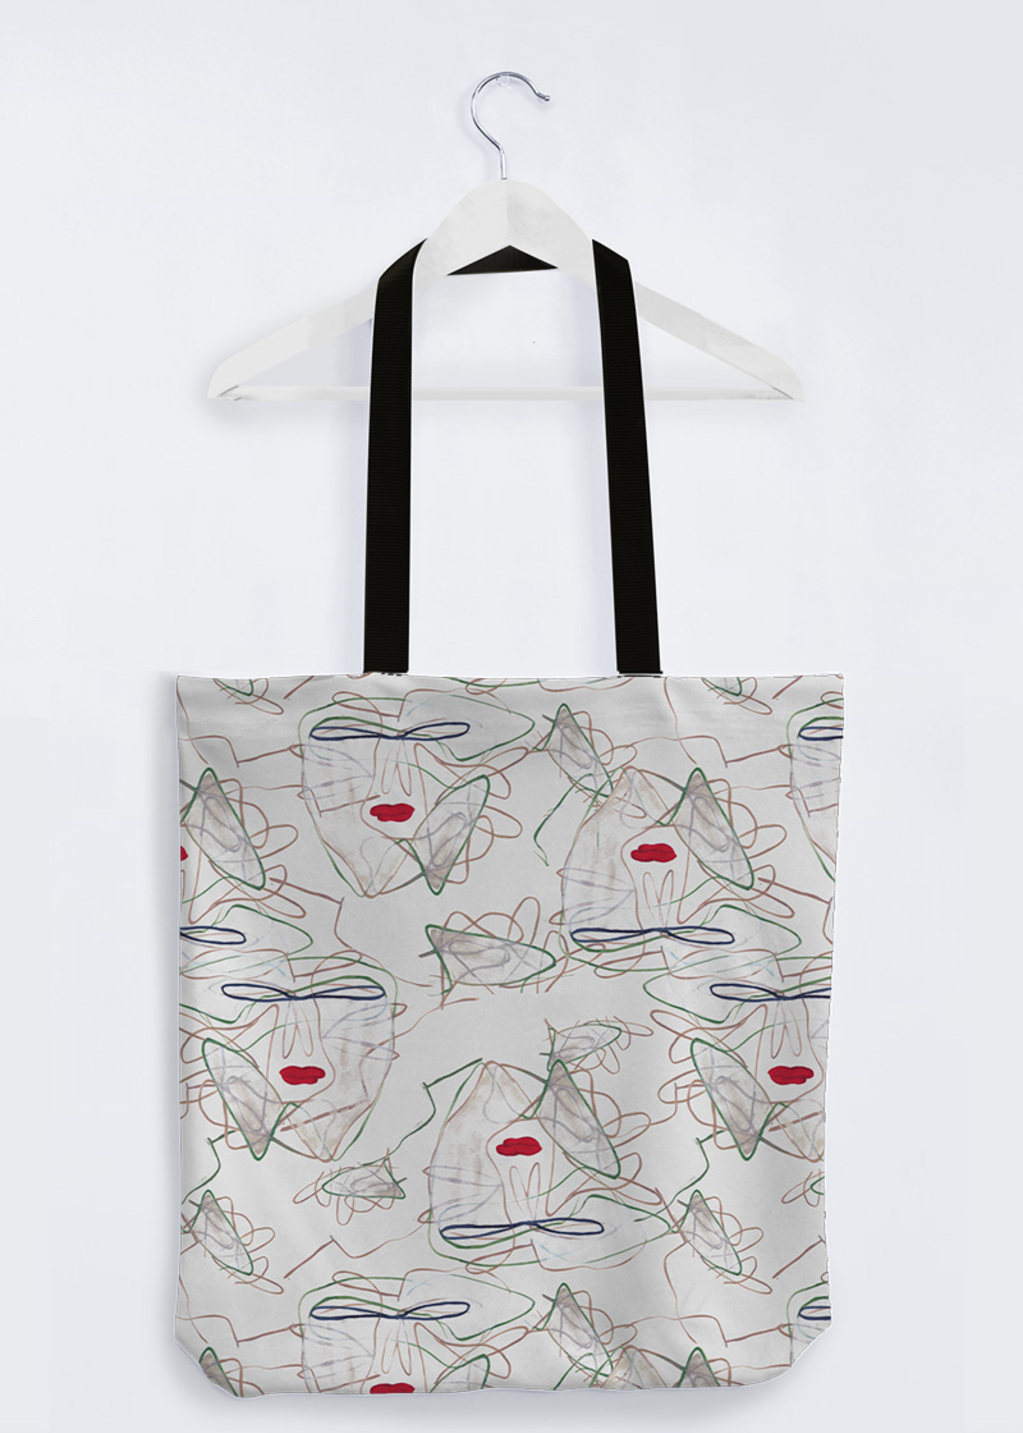 Picture of OnebyOne#10 PP Reuben's Tote